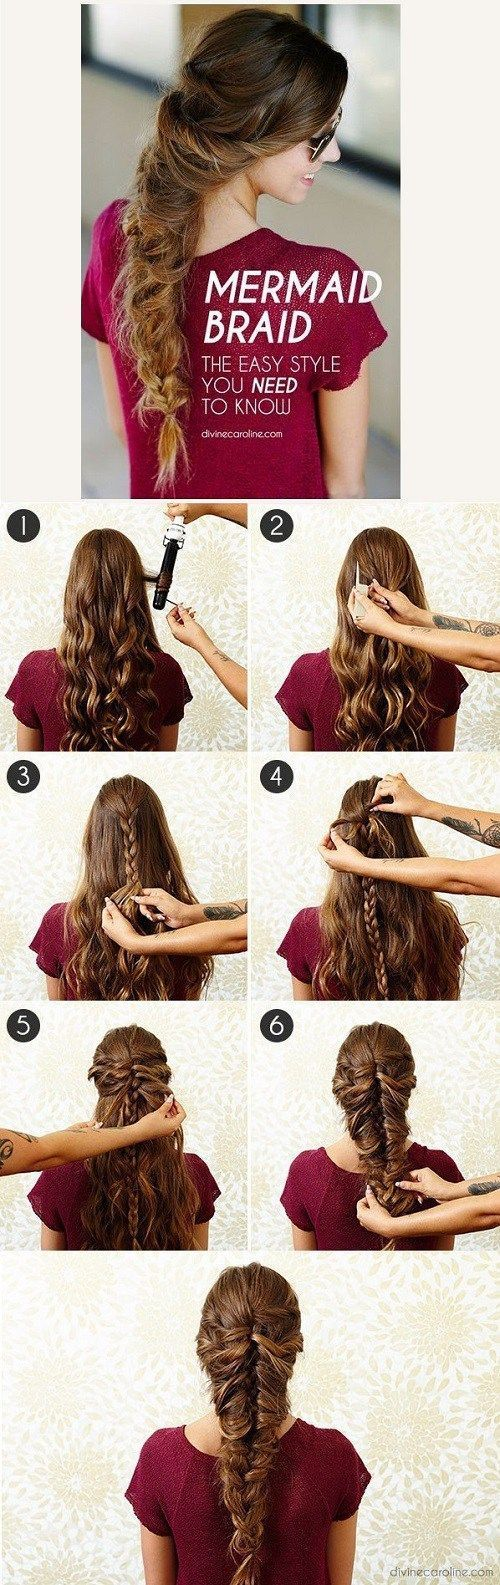 awesome 20 Quick Hairstyles You Can Do In Less Than Ten Minutes - Trend To Wear by http://www.dana-hairstyles.xyz/hair-tutorials/20-quick-hairstyles-you-can-do-in-less-than-ten-minutes-trend-to-wear/